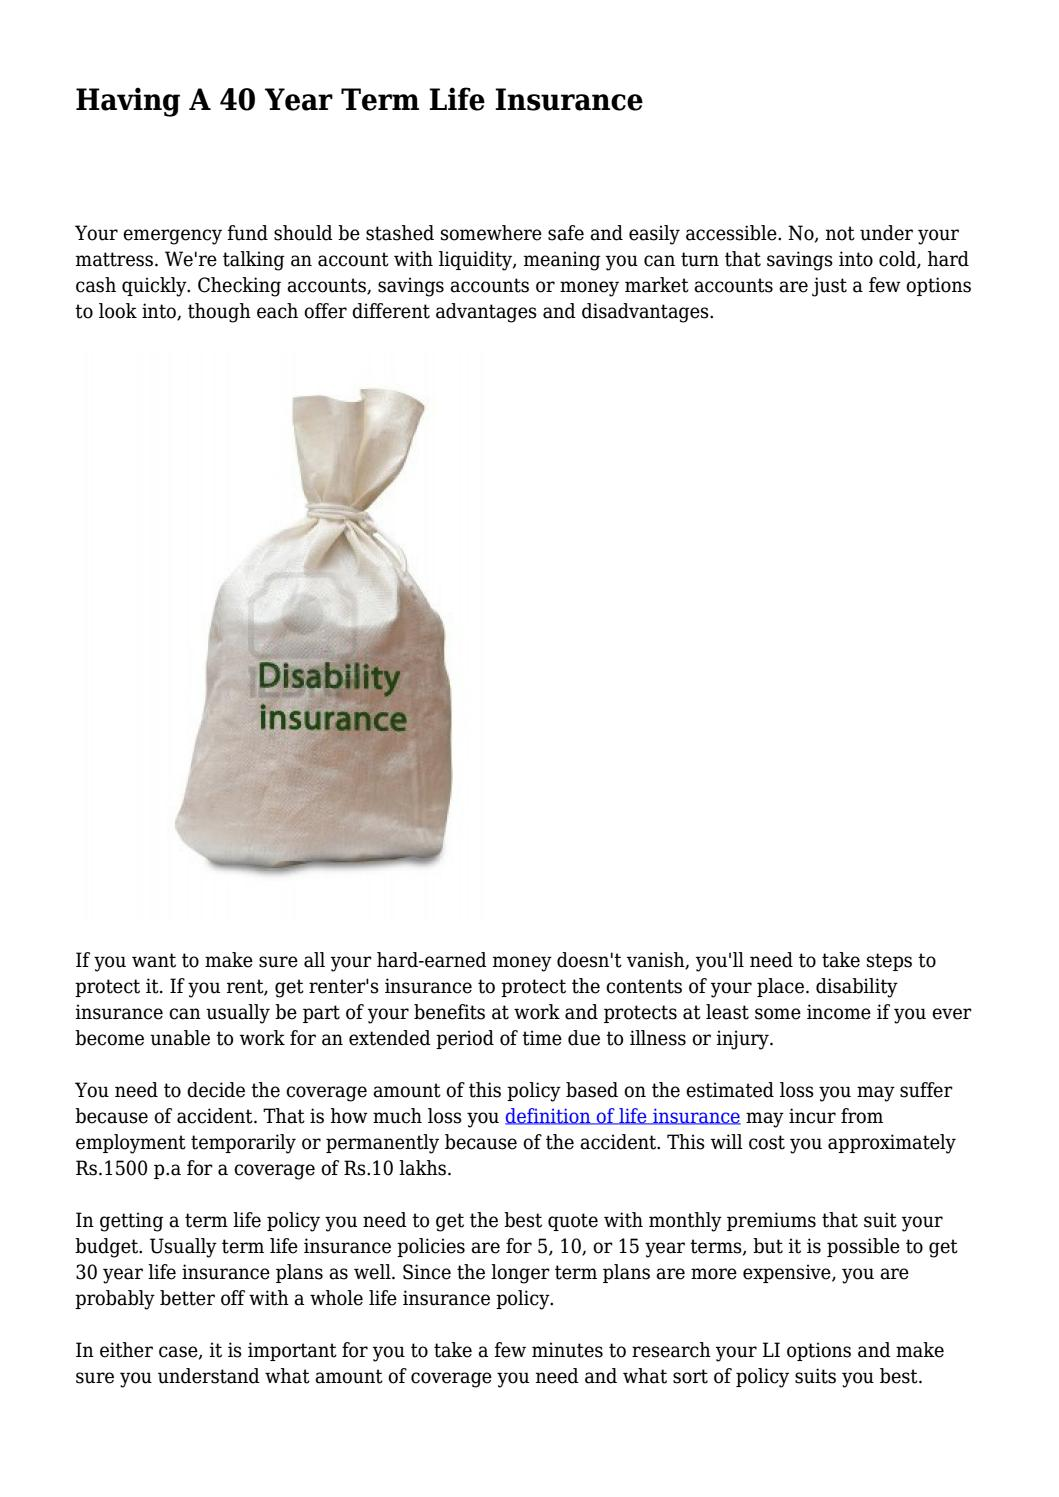 30 Year Term Life Insurance Quotes Having A 40 Year Term Life Insurance.daughertygjypxlrnyq  Issuu